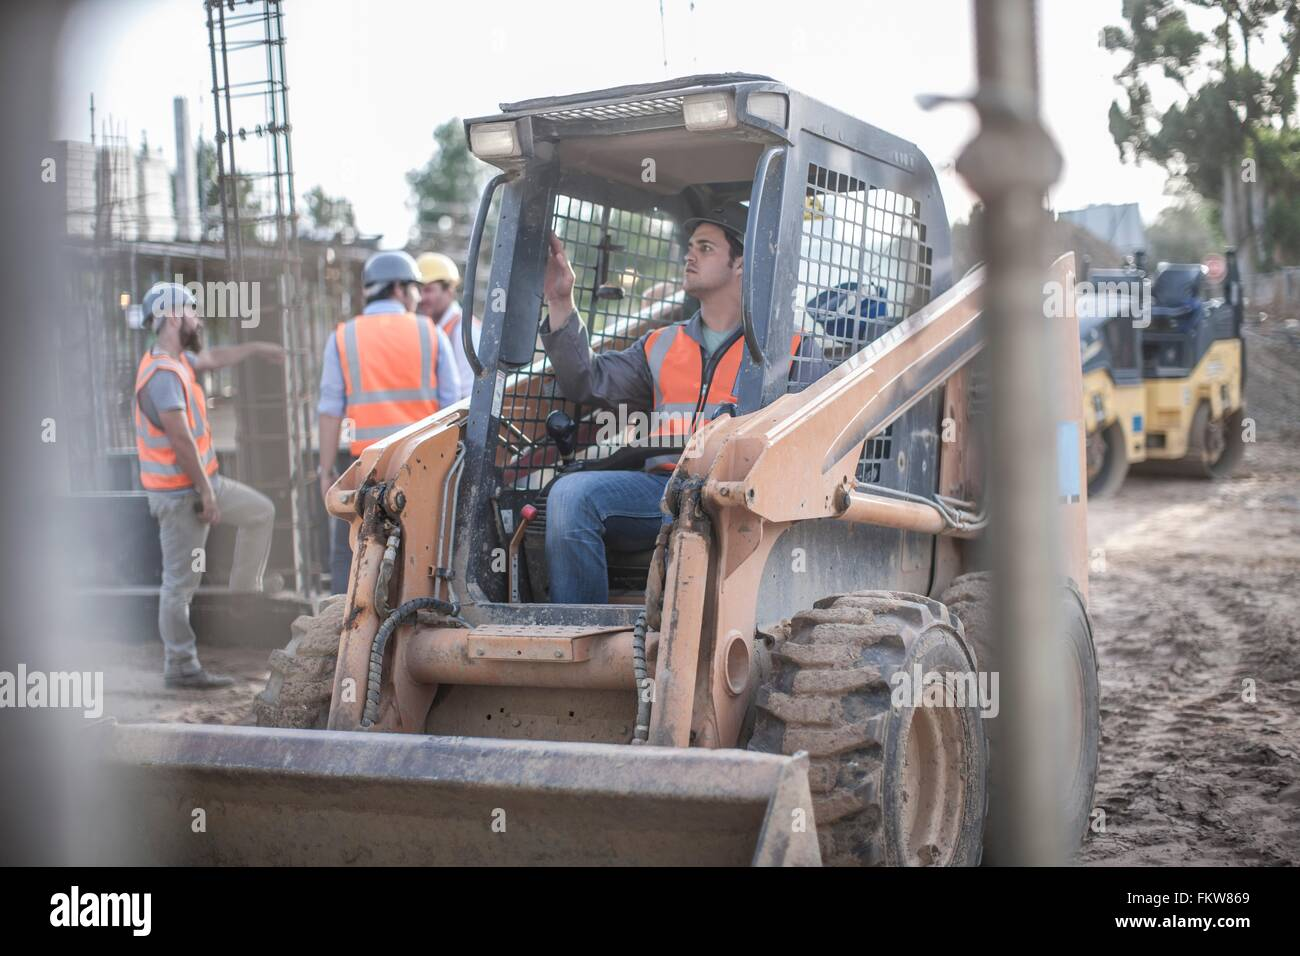 Construction worker driving excavator on construction site - Stock Image